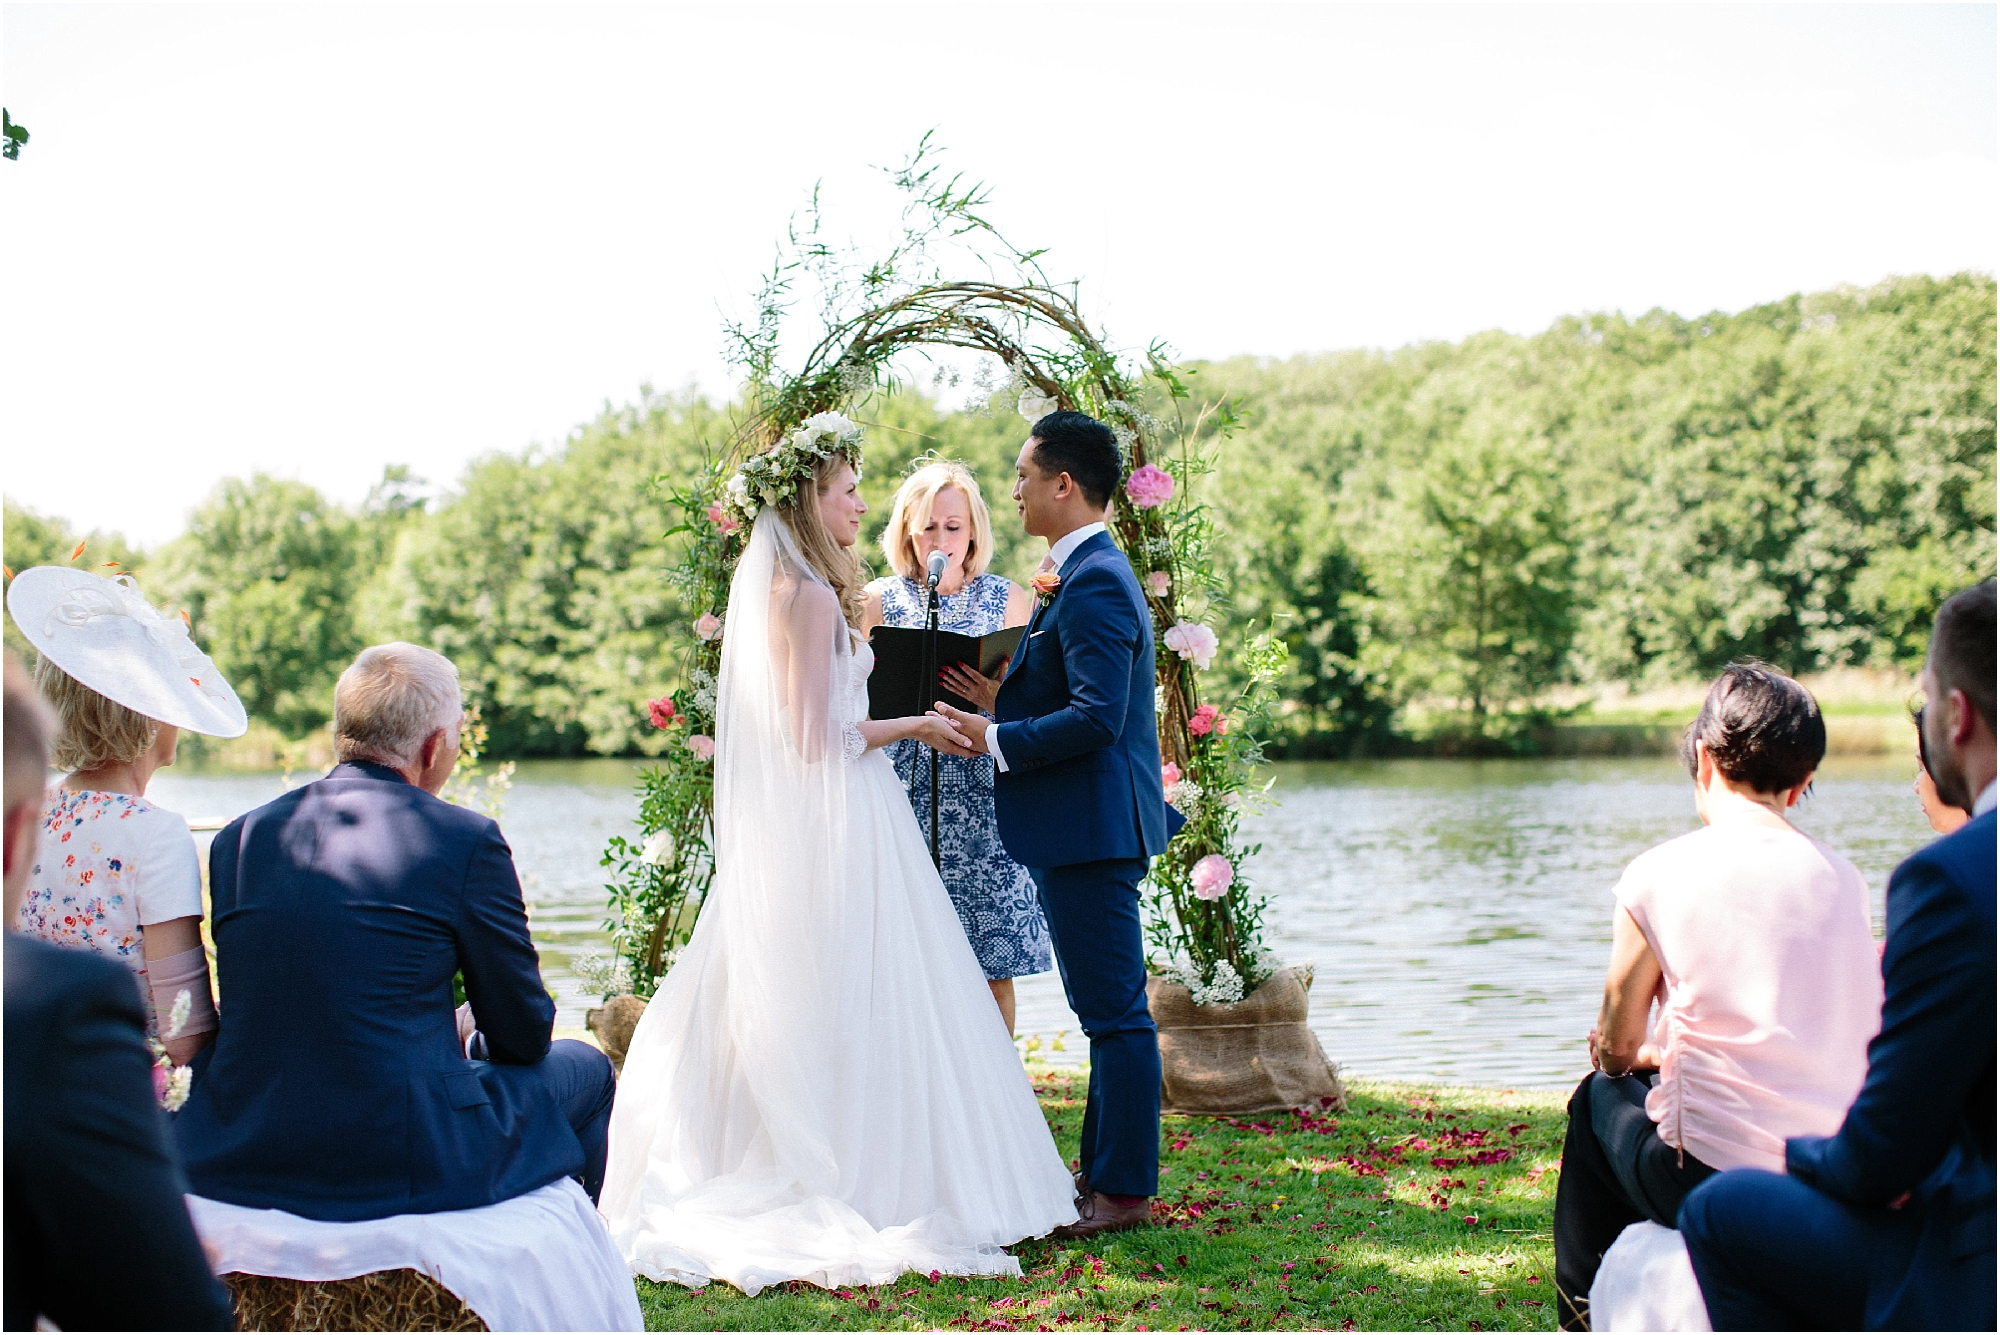 Outdoor wedding ceremony at Duncton Mill Fishery